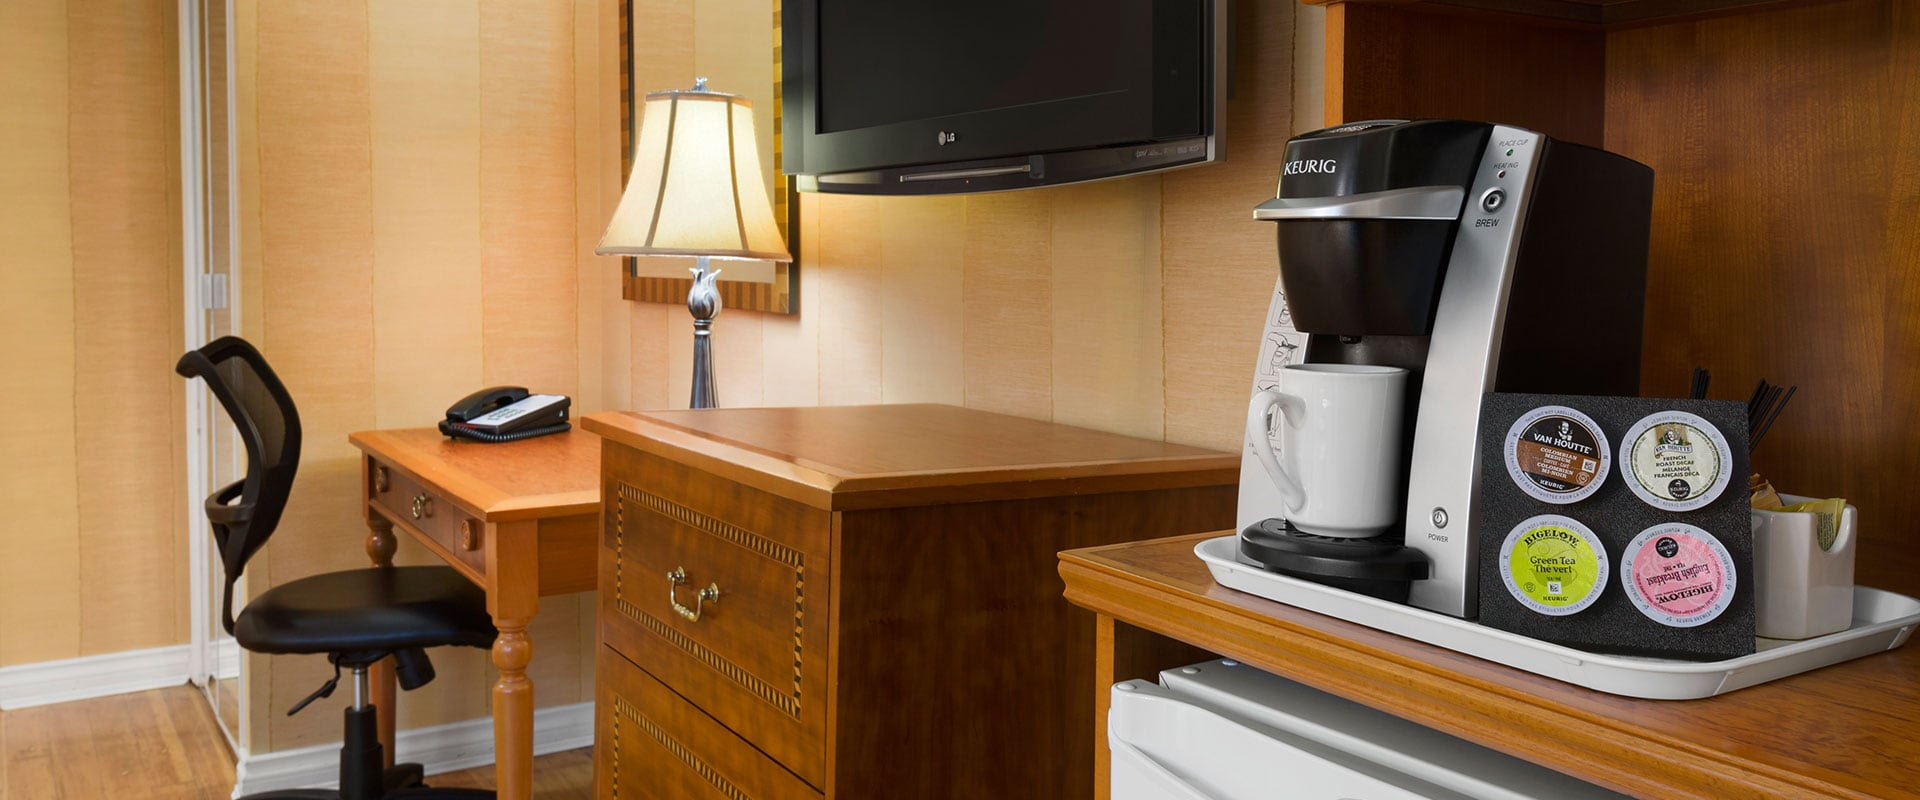 Some amenities found in a suite at Days Inn Vancouver Downtown include coffee maker, mini refrigerator, flatscreen TV and writing desk and chair.